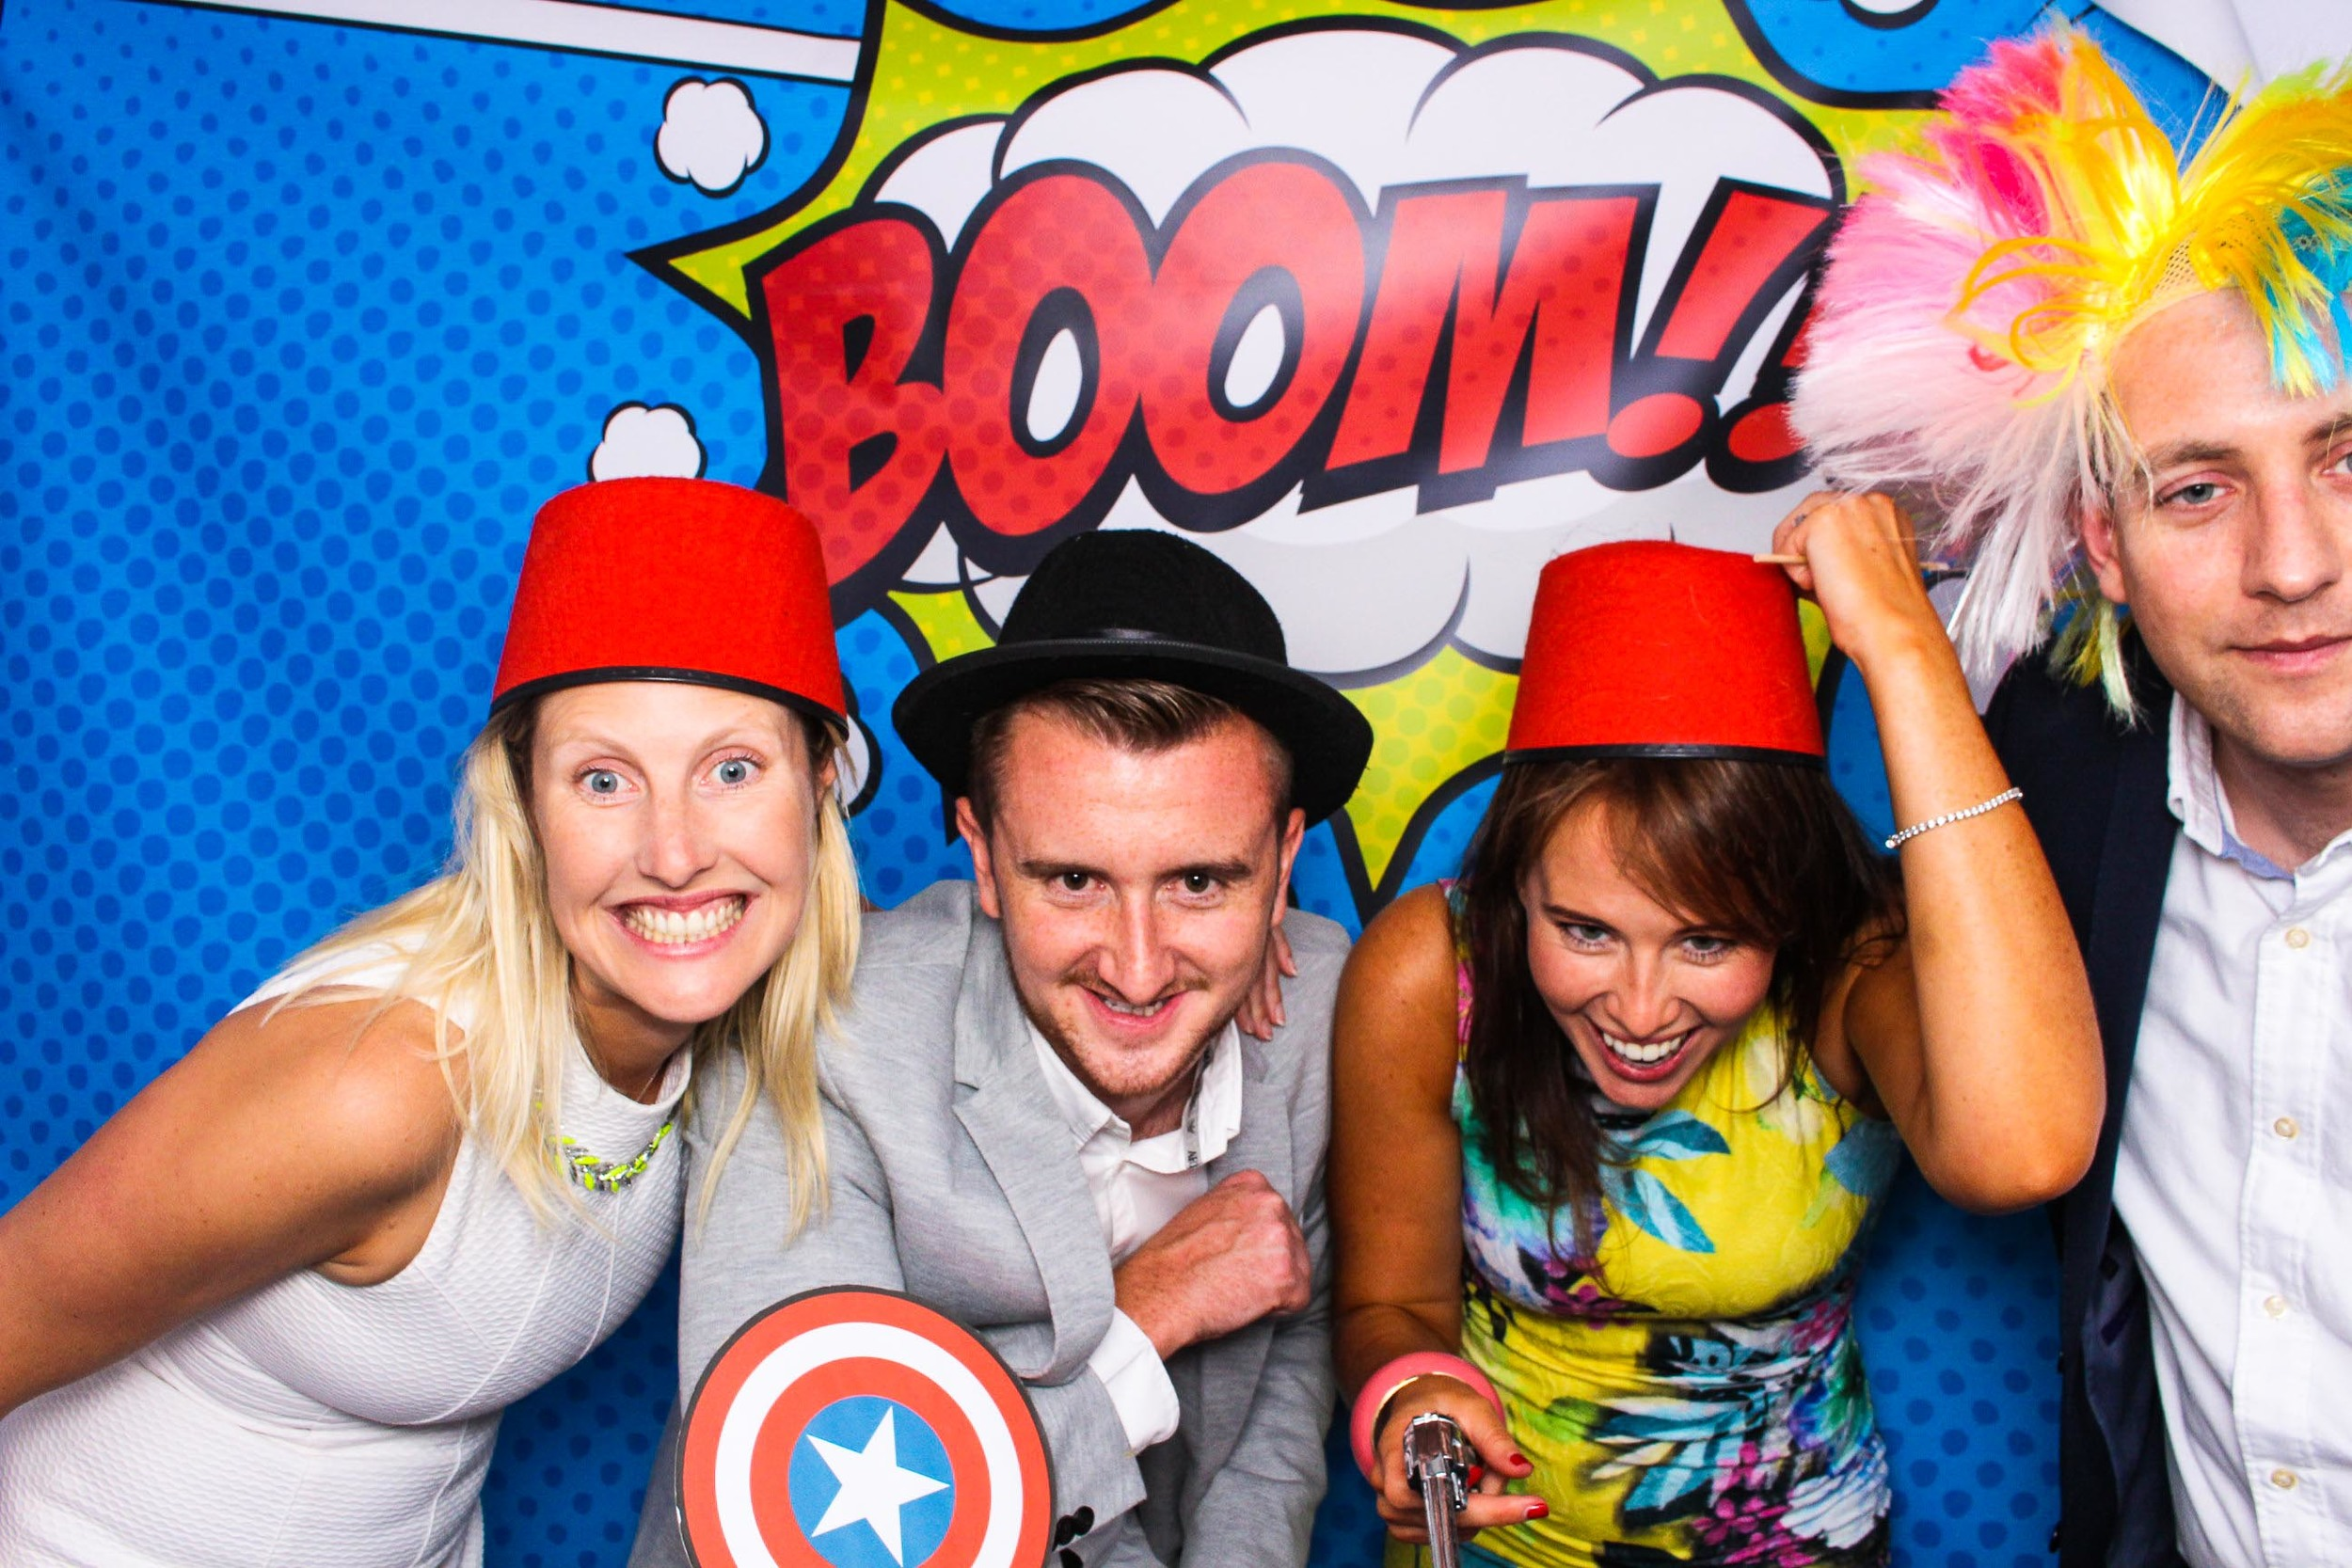 Fotoauto Photo Booth Hire - Shop Direct-300.jpg